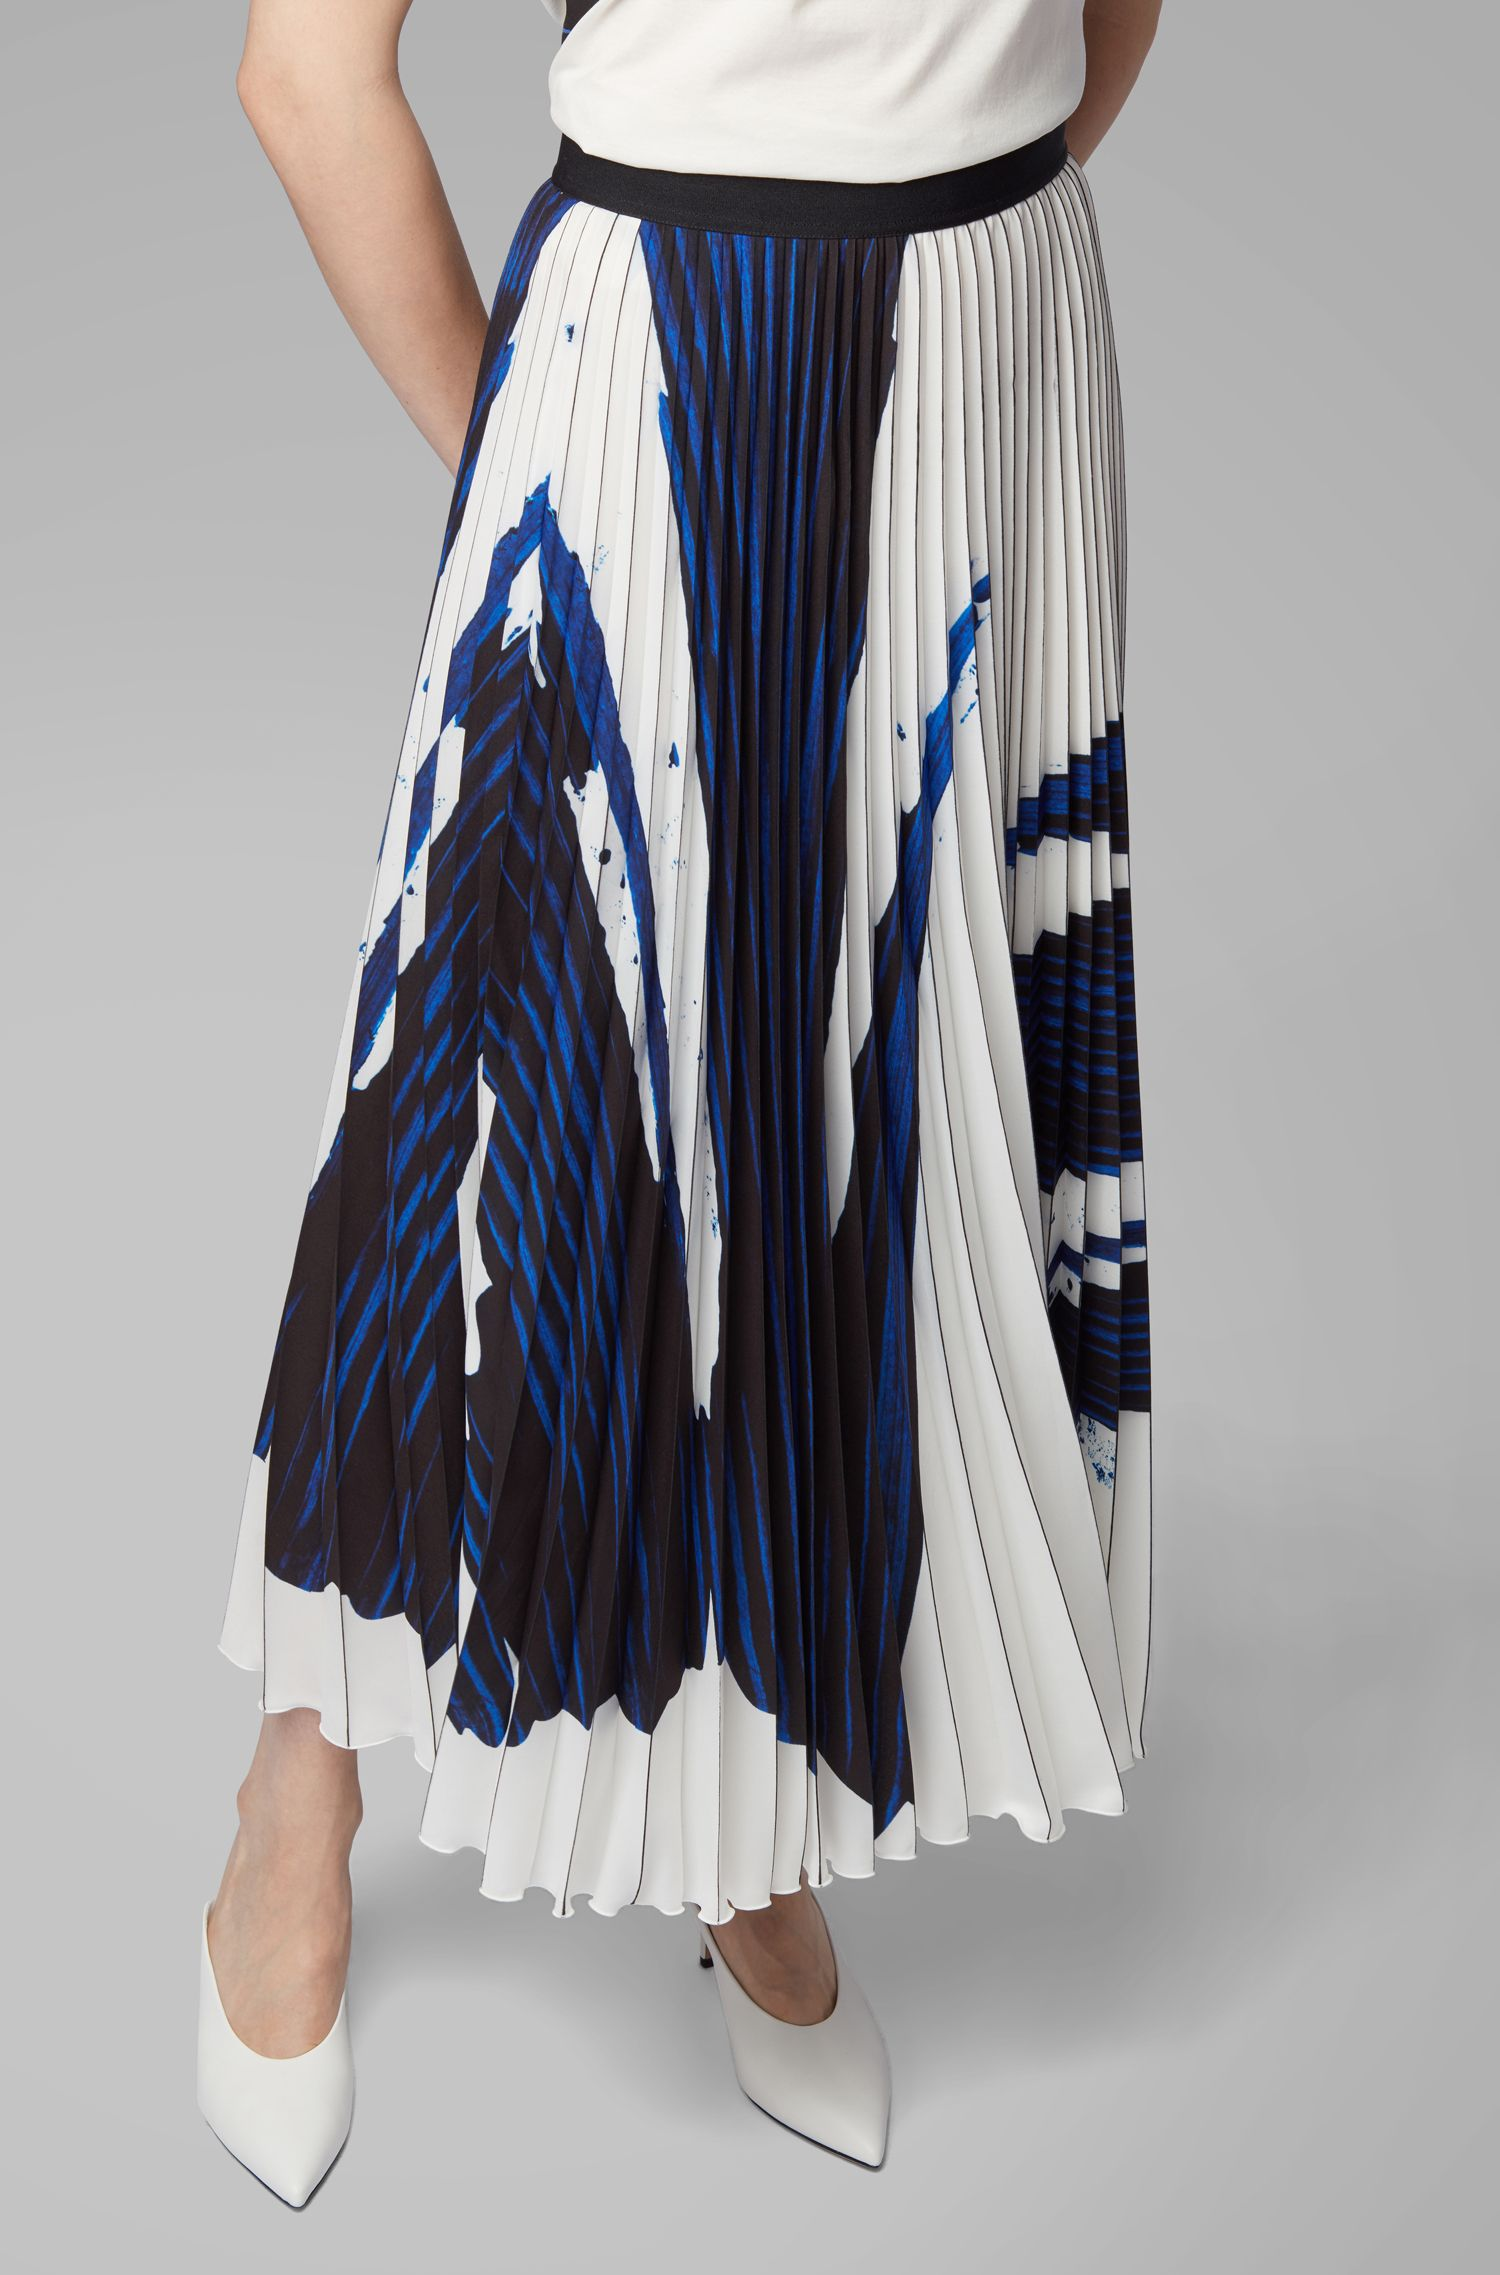 A-line skirt in Portuguese plissé fabric with overprinted motif, Patterned